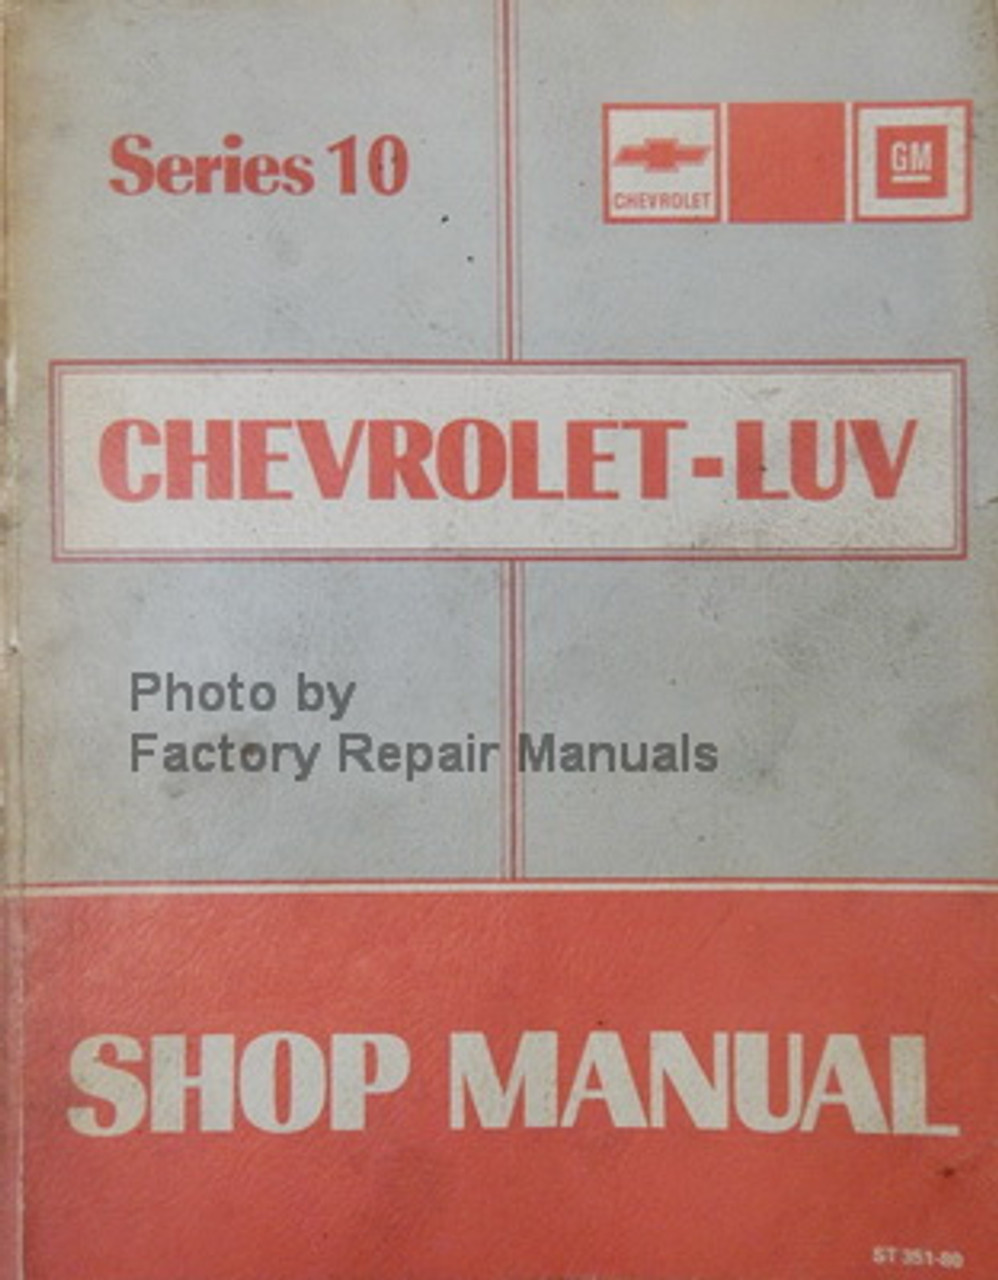 1980 Chevy Luv Pickup Series 10 Factory Service Manual Original Shop on